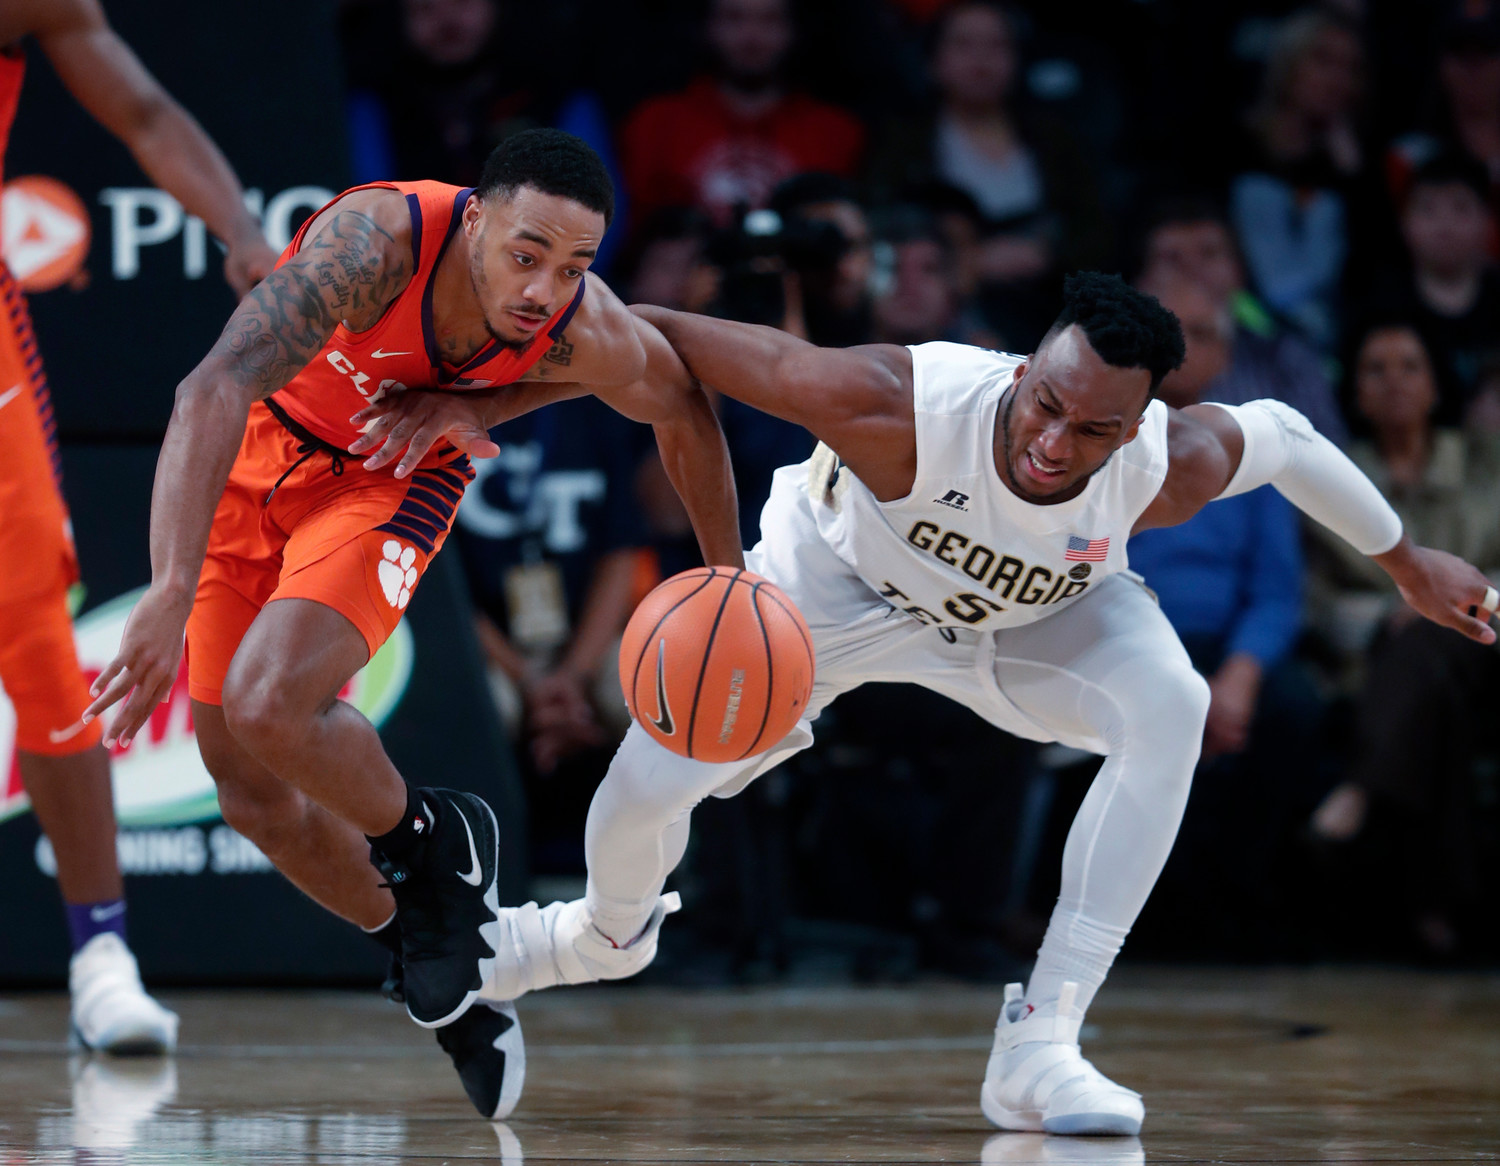 ASSOCIATED PRESS Clemson guard Marcquise Reed (2) steals the ball from Georgia Tech guard Josh Okogie (5) in the second half of the Tigers' 72-70 victory on Sunday in Atlanta.